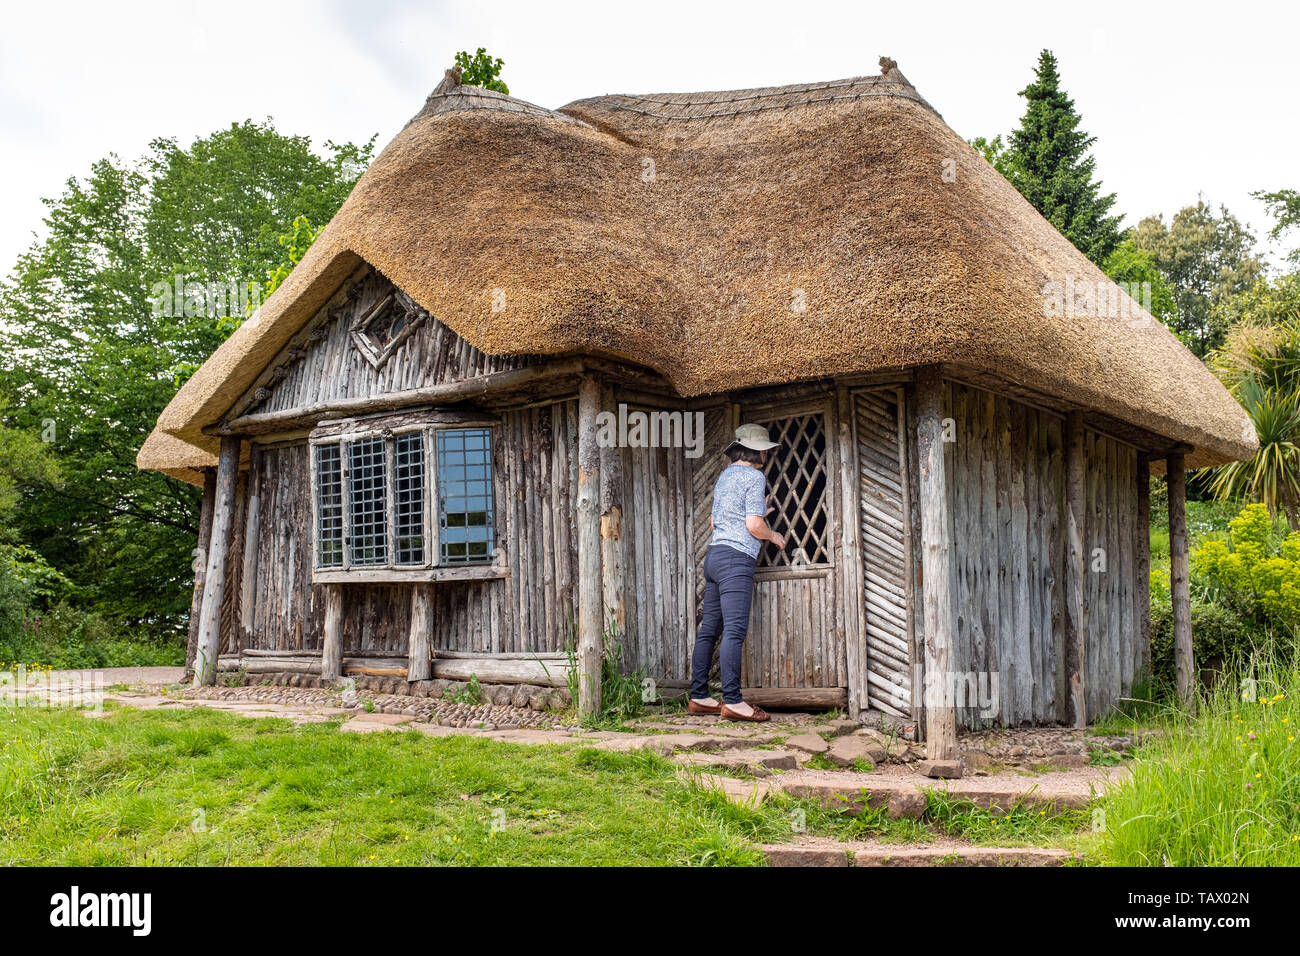 Taking a peek inside, the Bear's Hut, Killerton Estate, National Trust, Killerton, Devon, UK - Stock Image